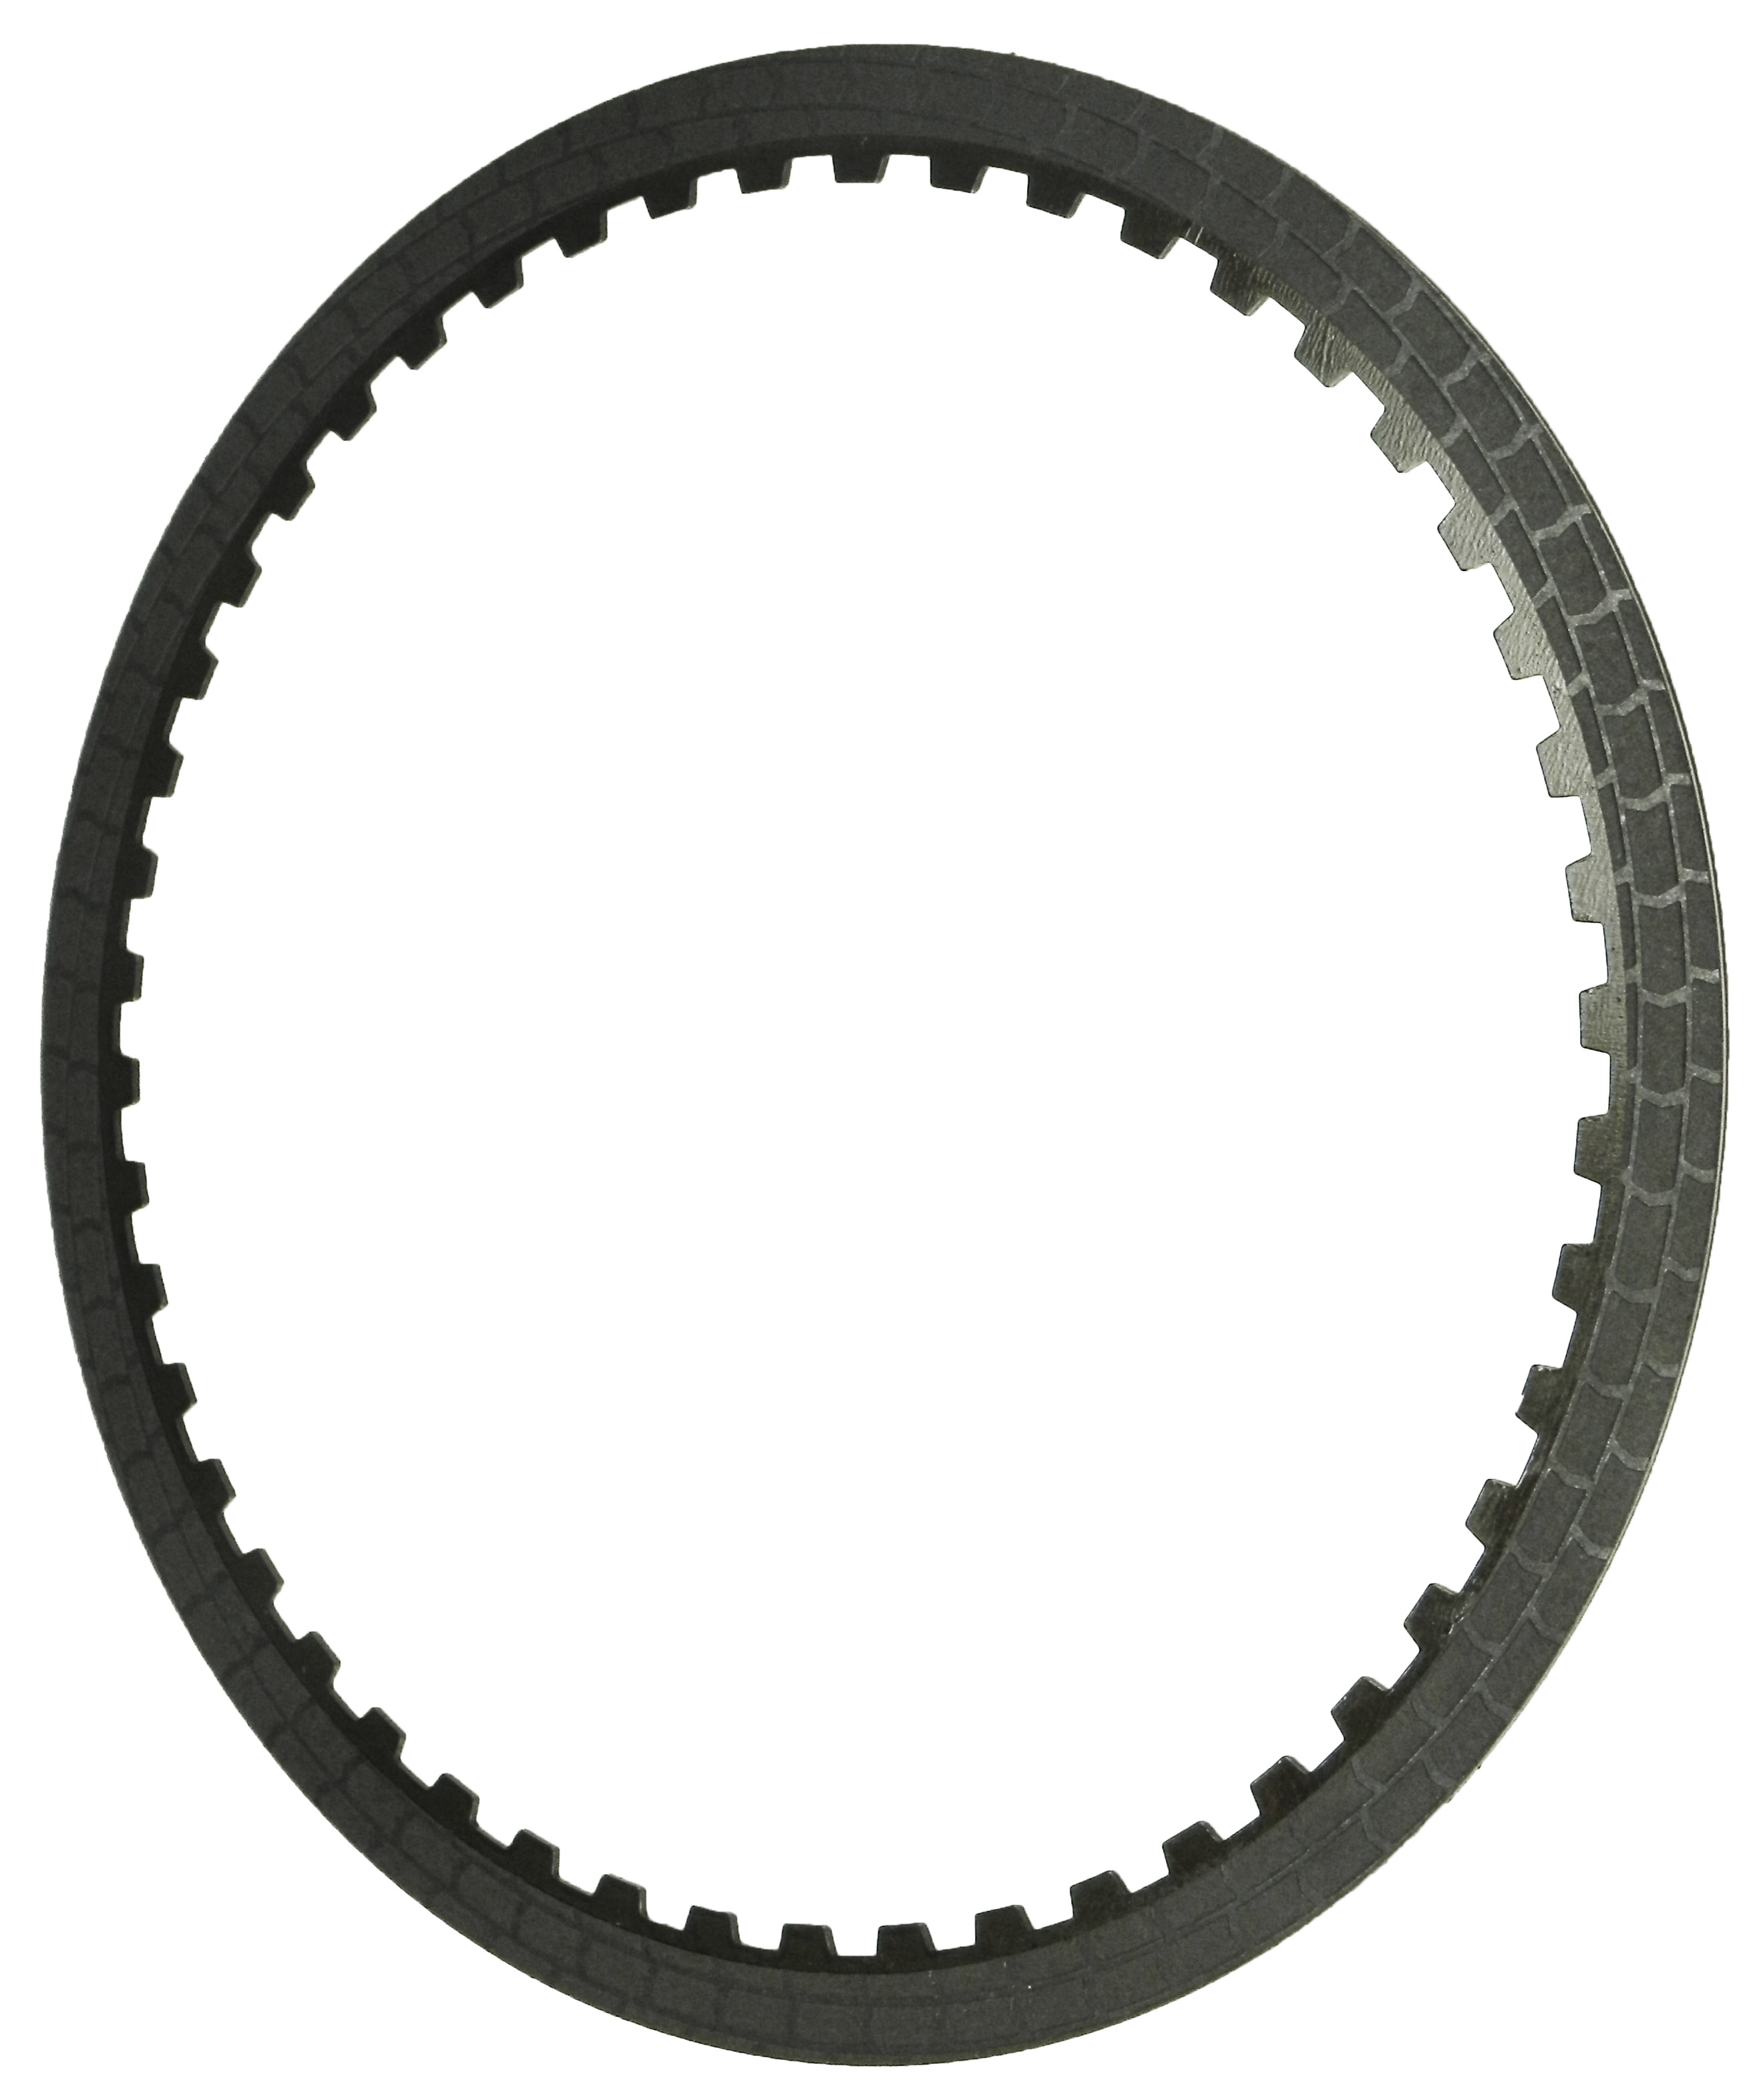 RH558500 | 2007-ON Friction Clutch Plate (HT) Hybrid Technology Low, Reverse Proprietary High Energy (HT)